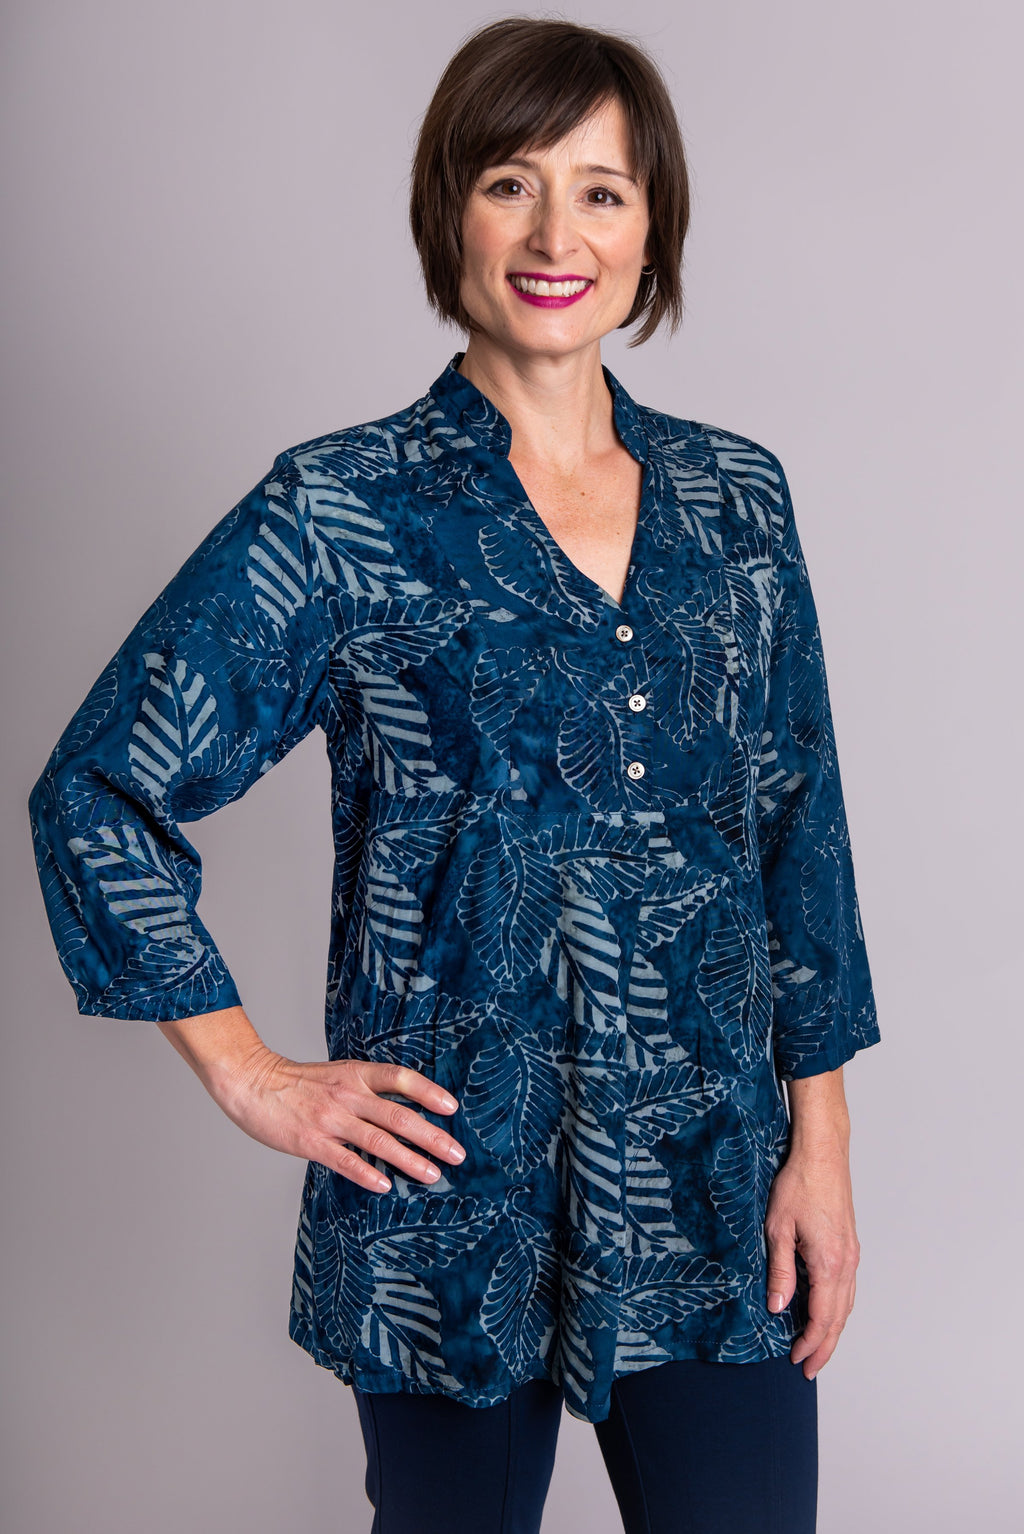 Shirley Blouse, Indigo/Grey Leaves - Blue Sky Clothing Co